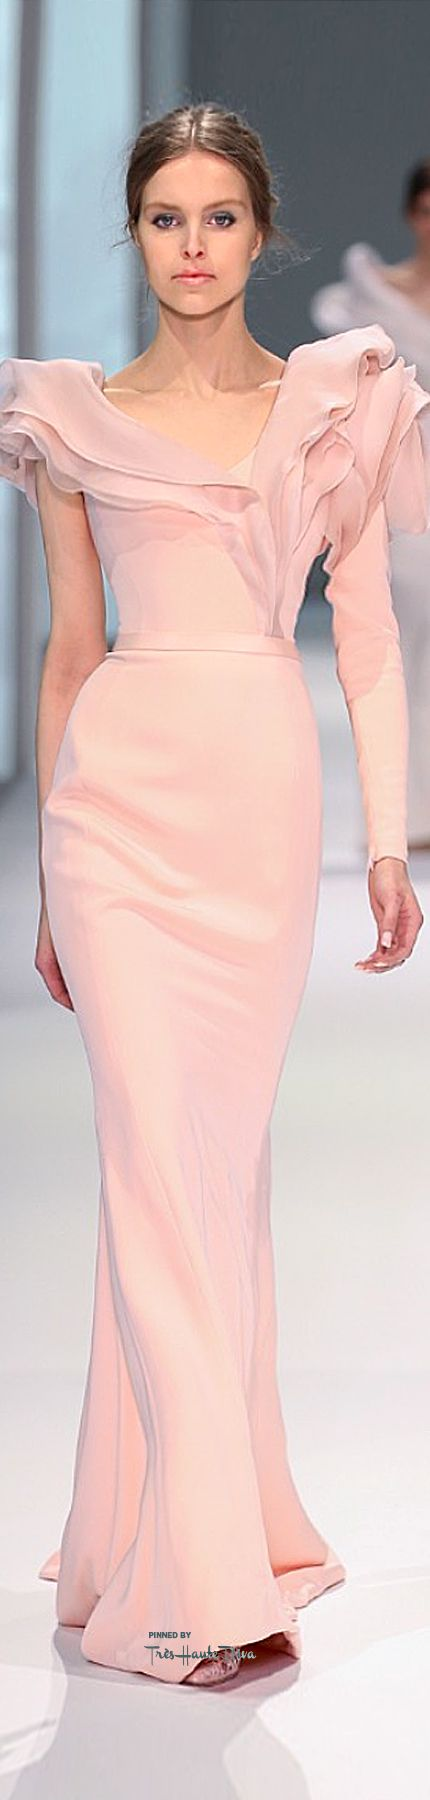 A soft beauty. http://www.thevintagelighthouse.com/ Ralph & Russo Spring 2015 Couture